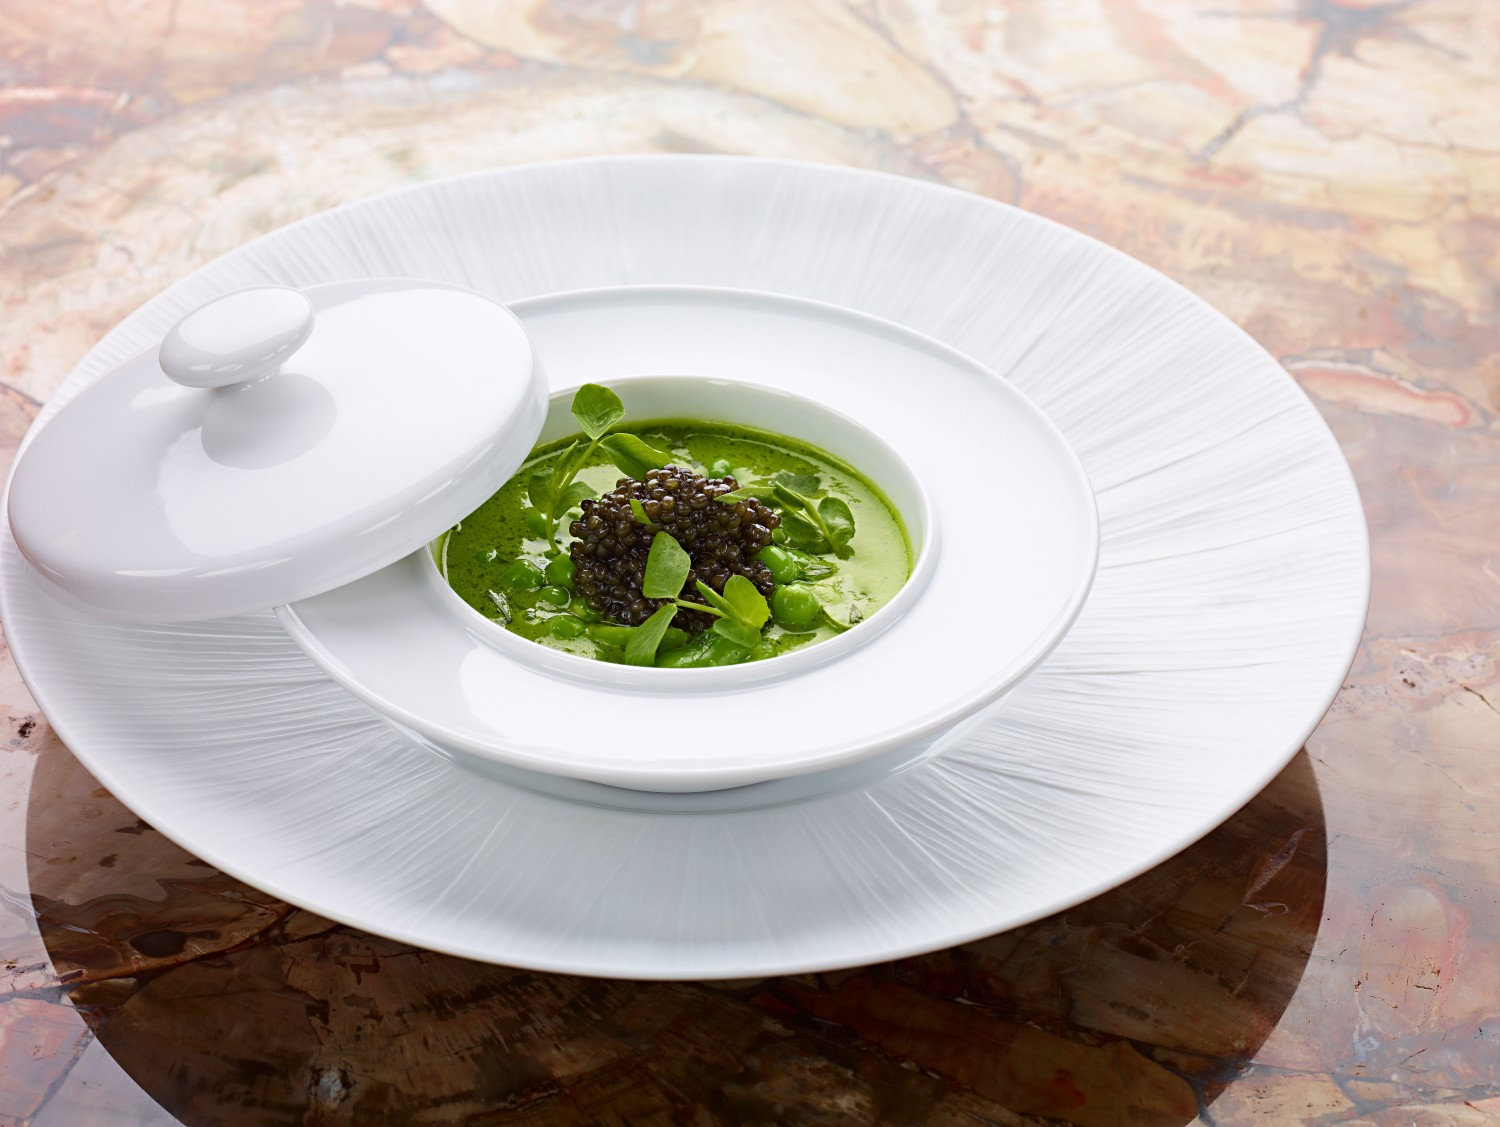 Greens with lentils. (Courtesy of Bouley Botanical)